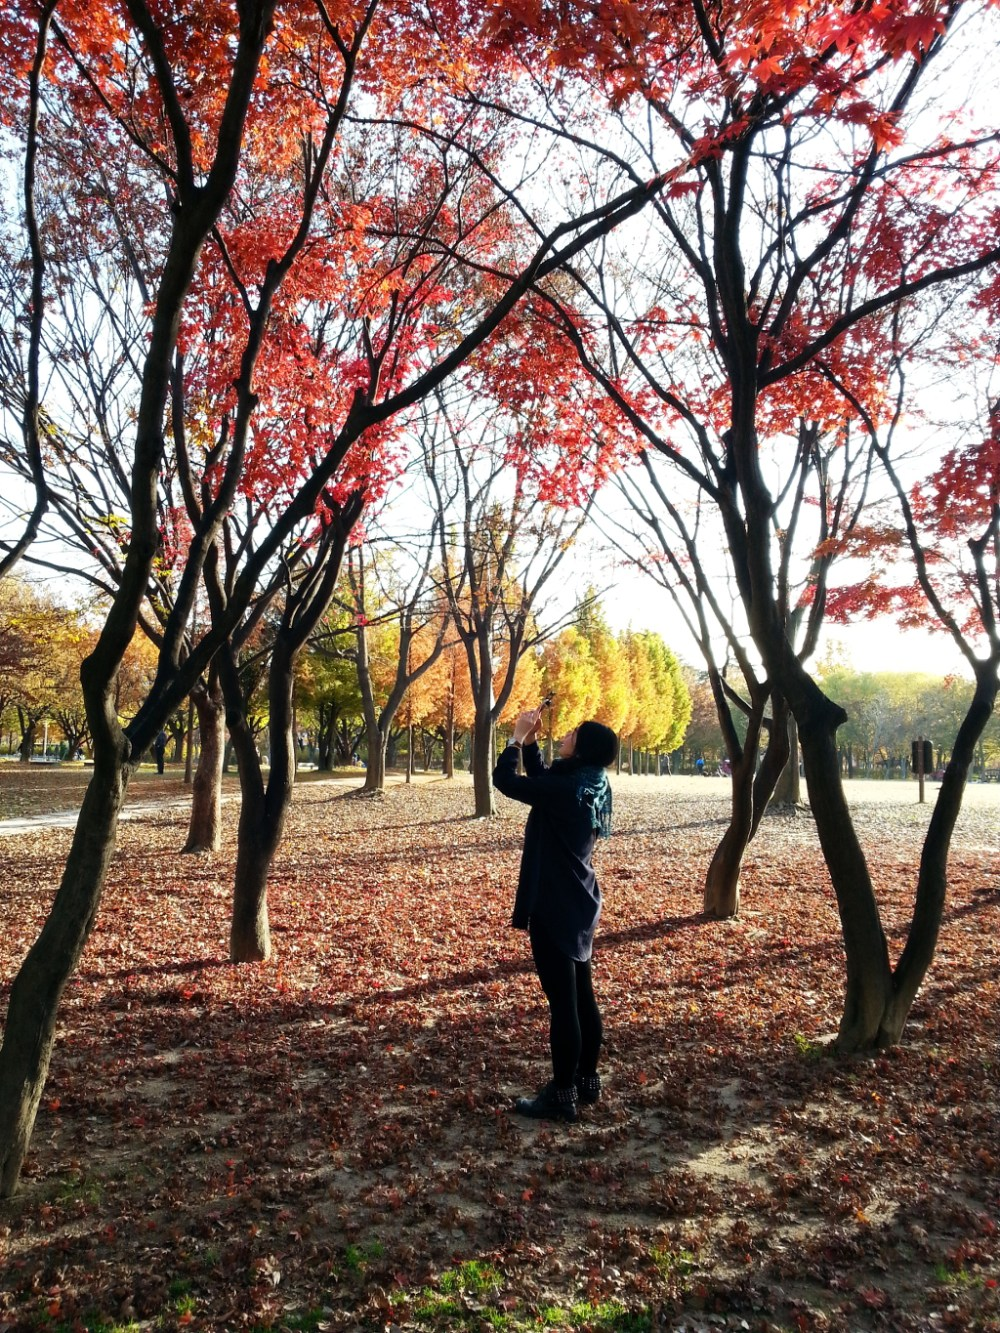 Travel Photographer | Autumn 서울숲 (Seoul Forest) South Korea